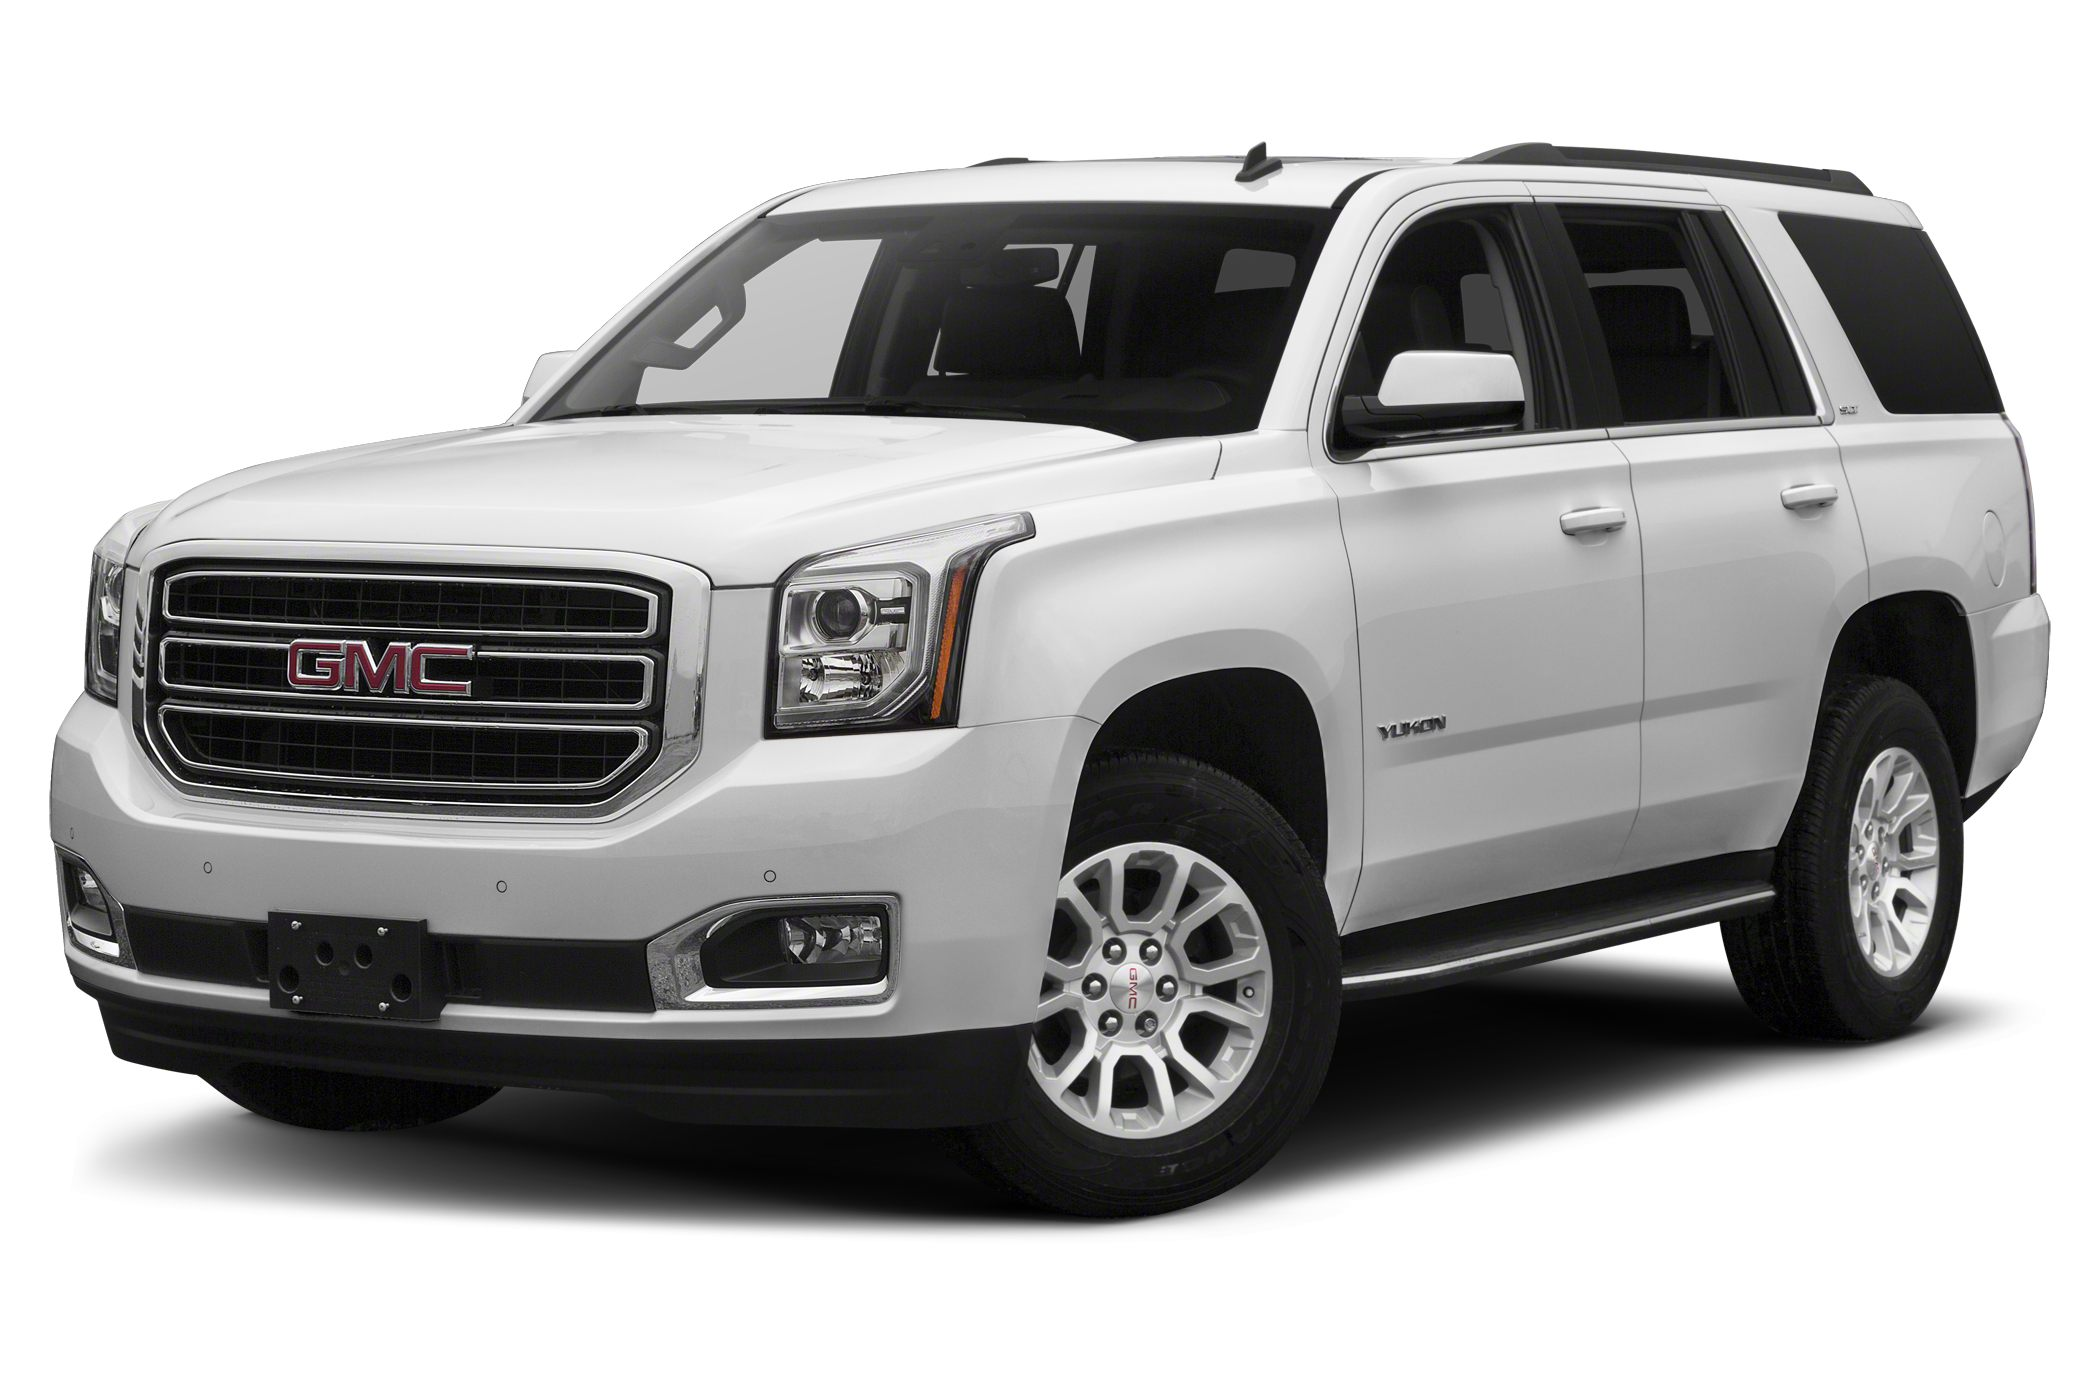 2015 GMC Yukon SLE SUV for sale in Marianna for $47,330 with 0 miles.